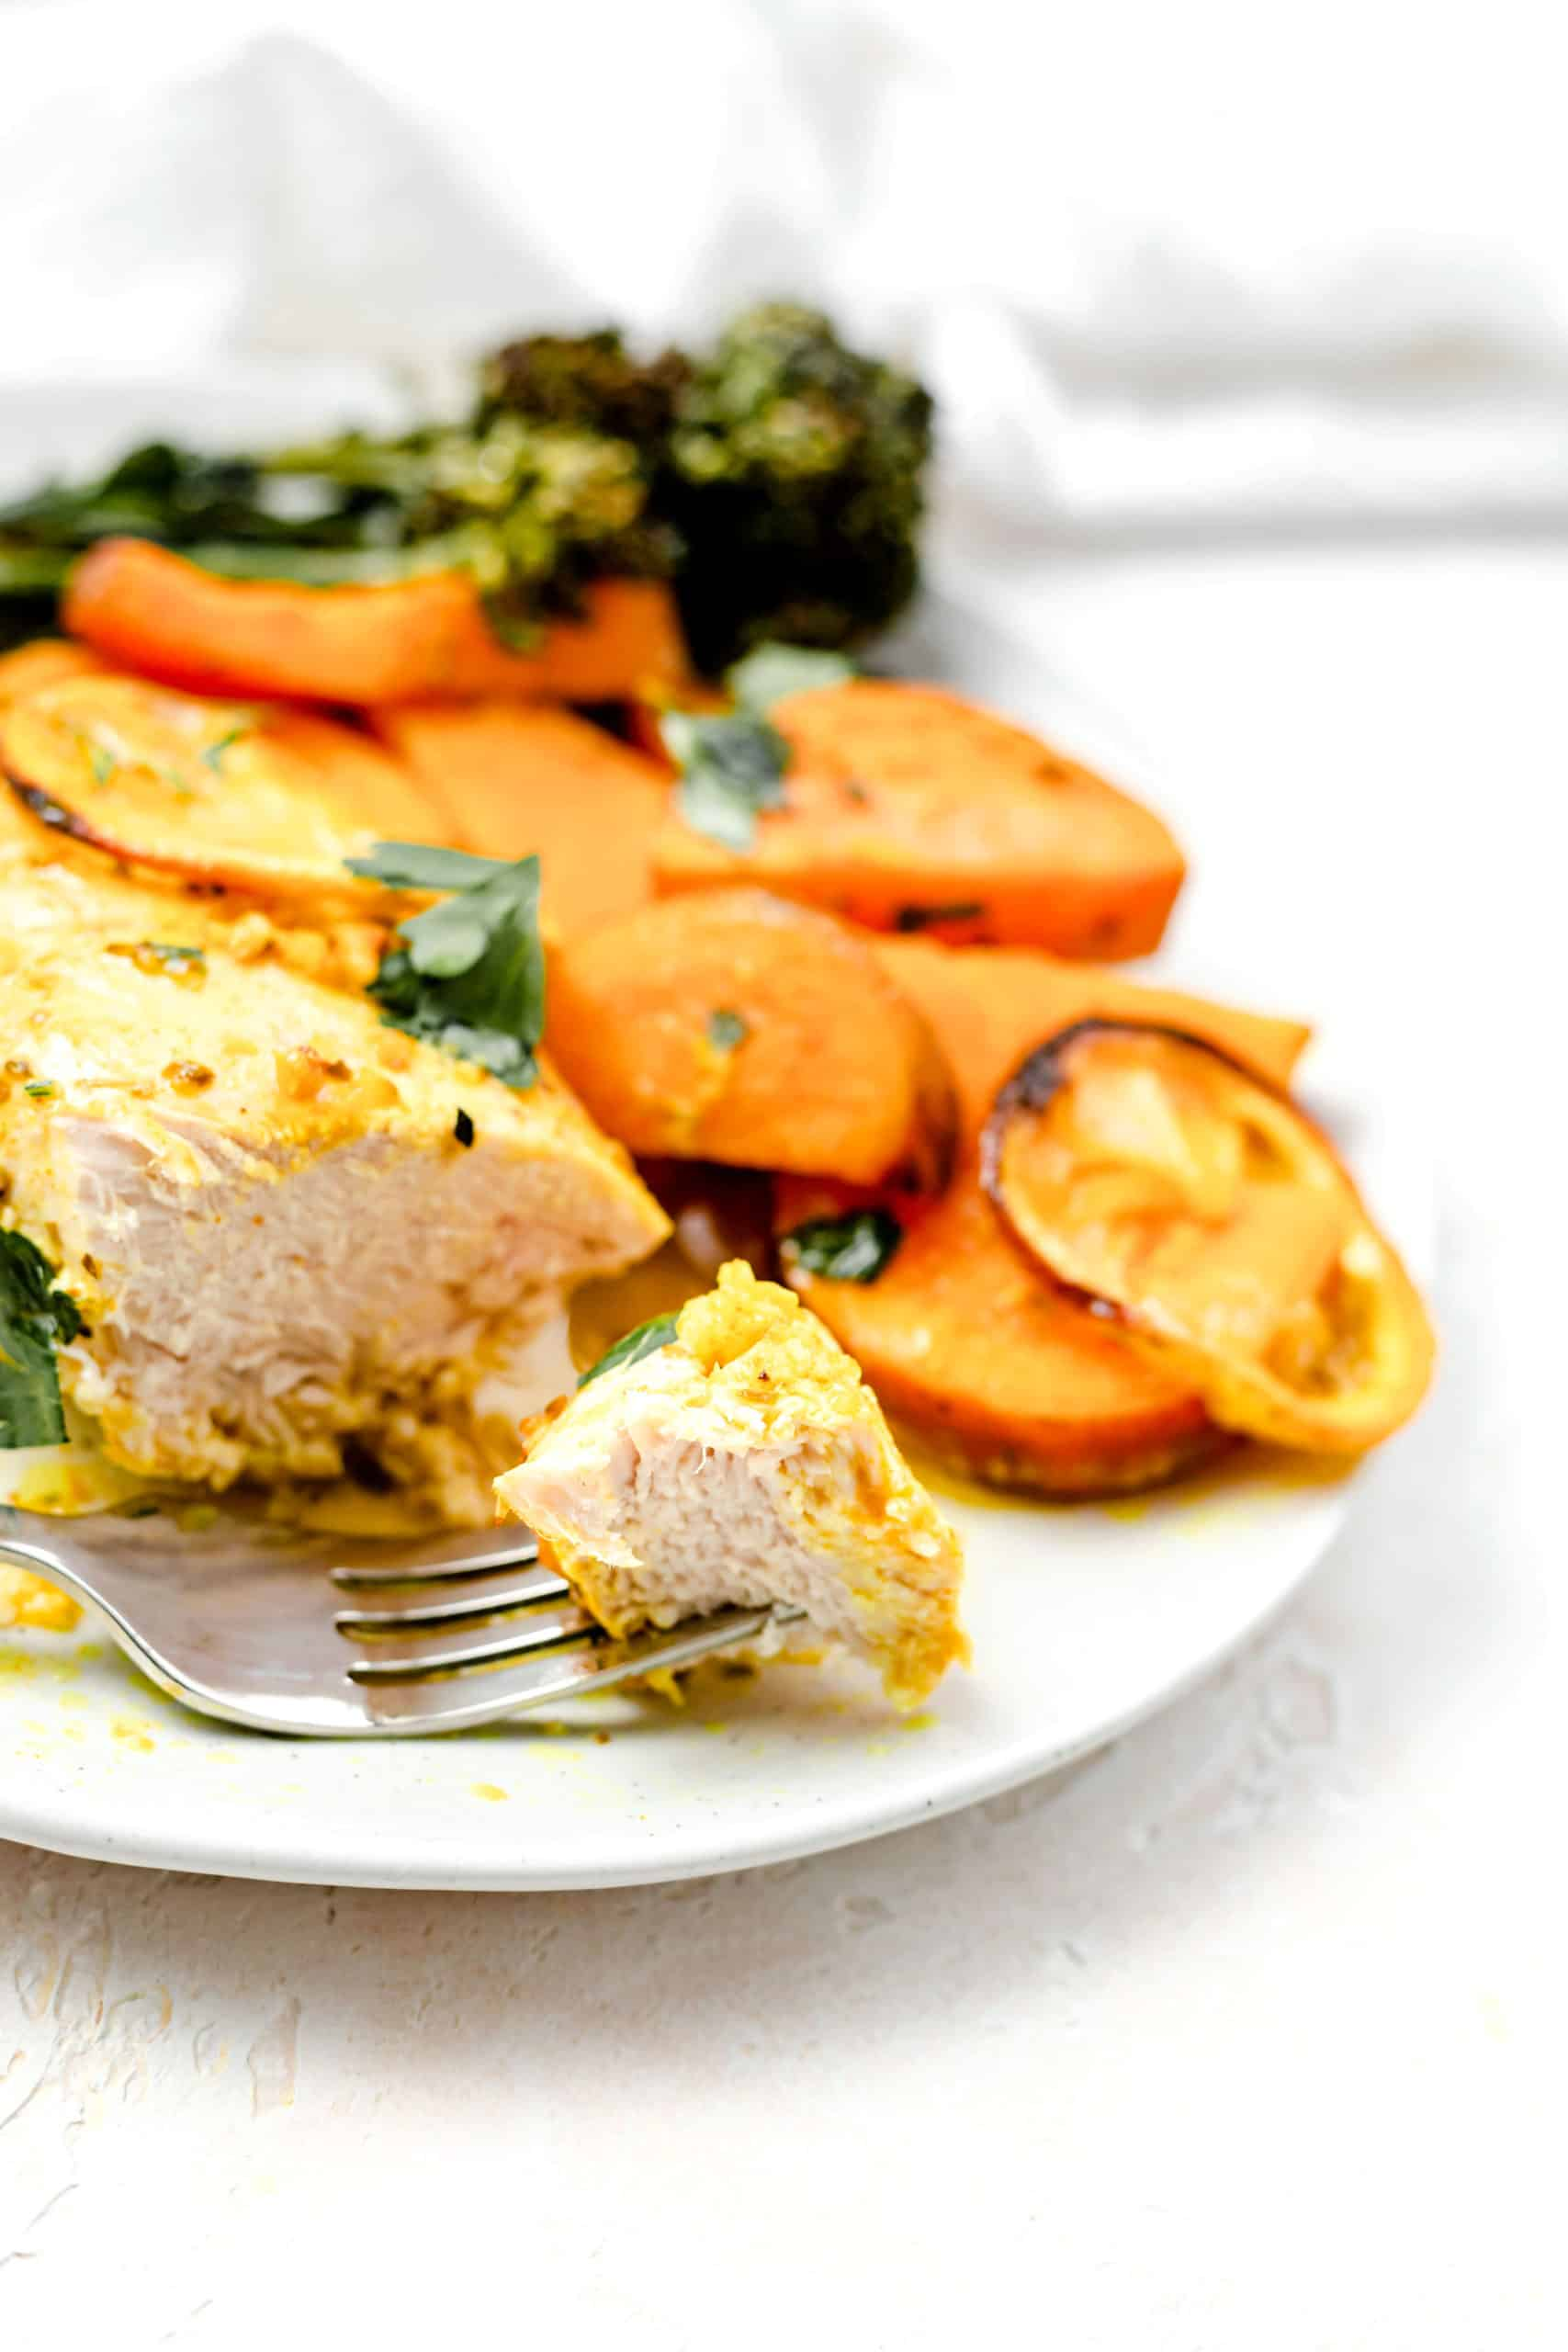 chicken and sweet potatoes on a plate